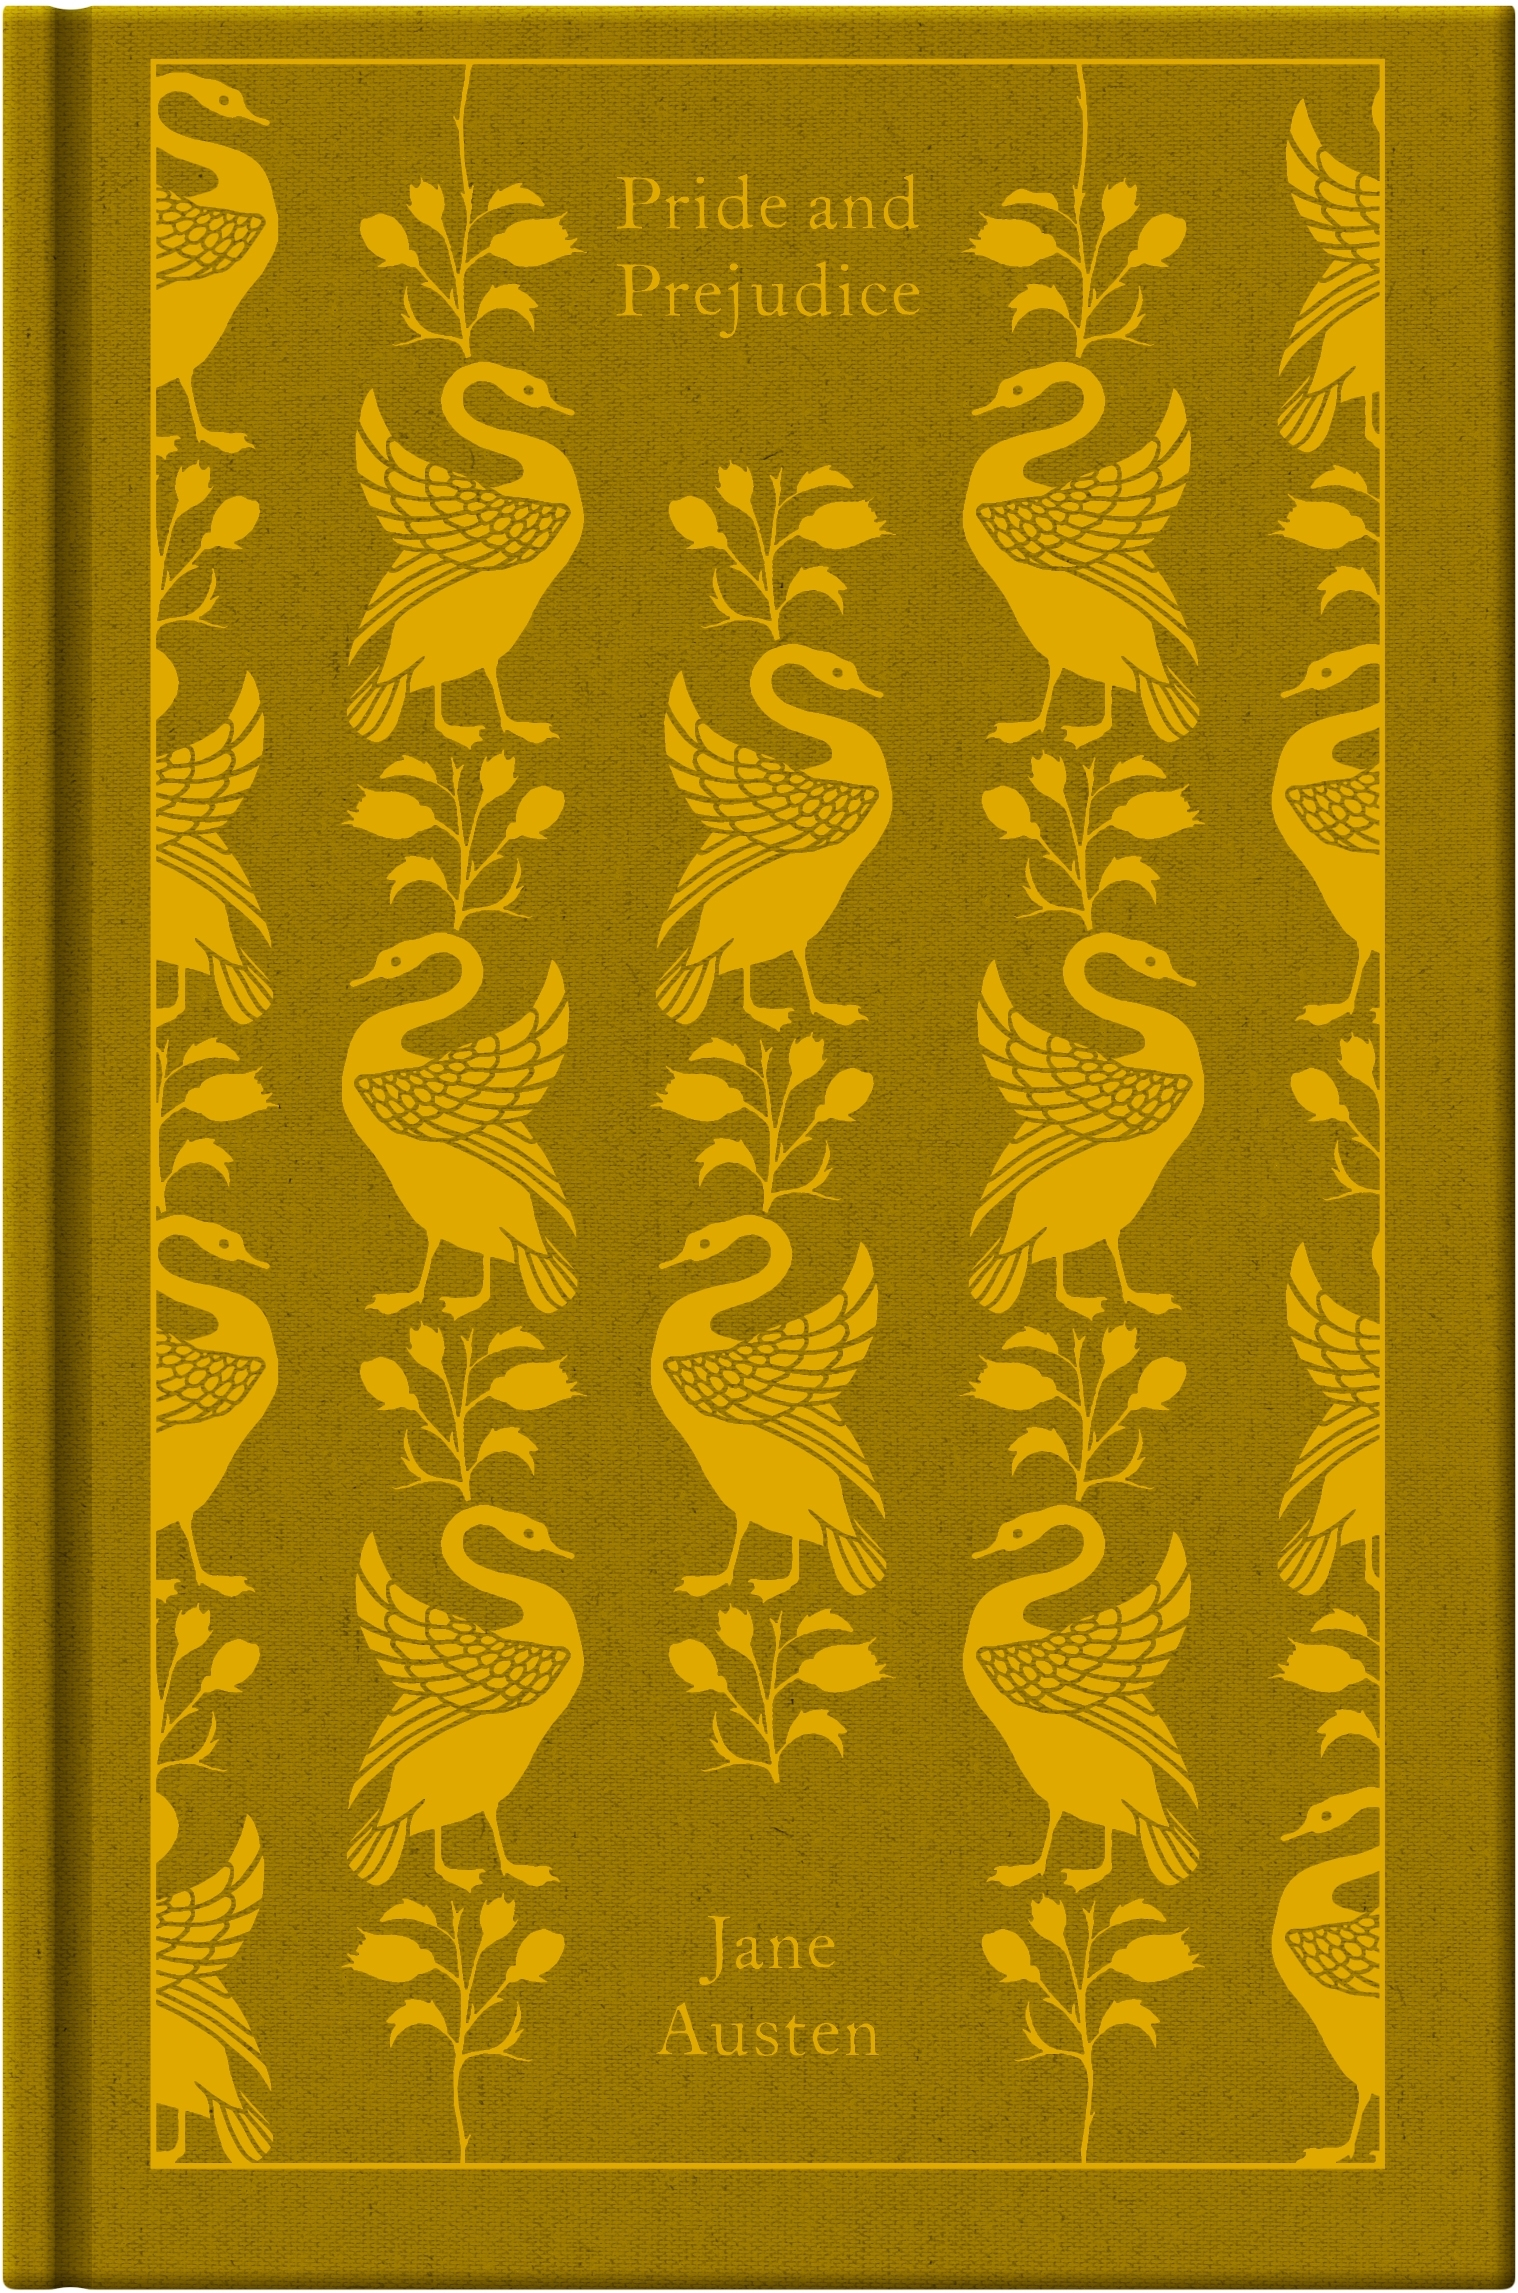 Classic Book Kindle Cover Pride And Prejudice ~ Pride and prejudice penguin books australia